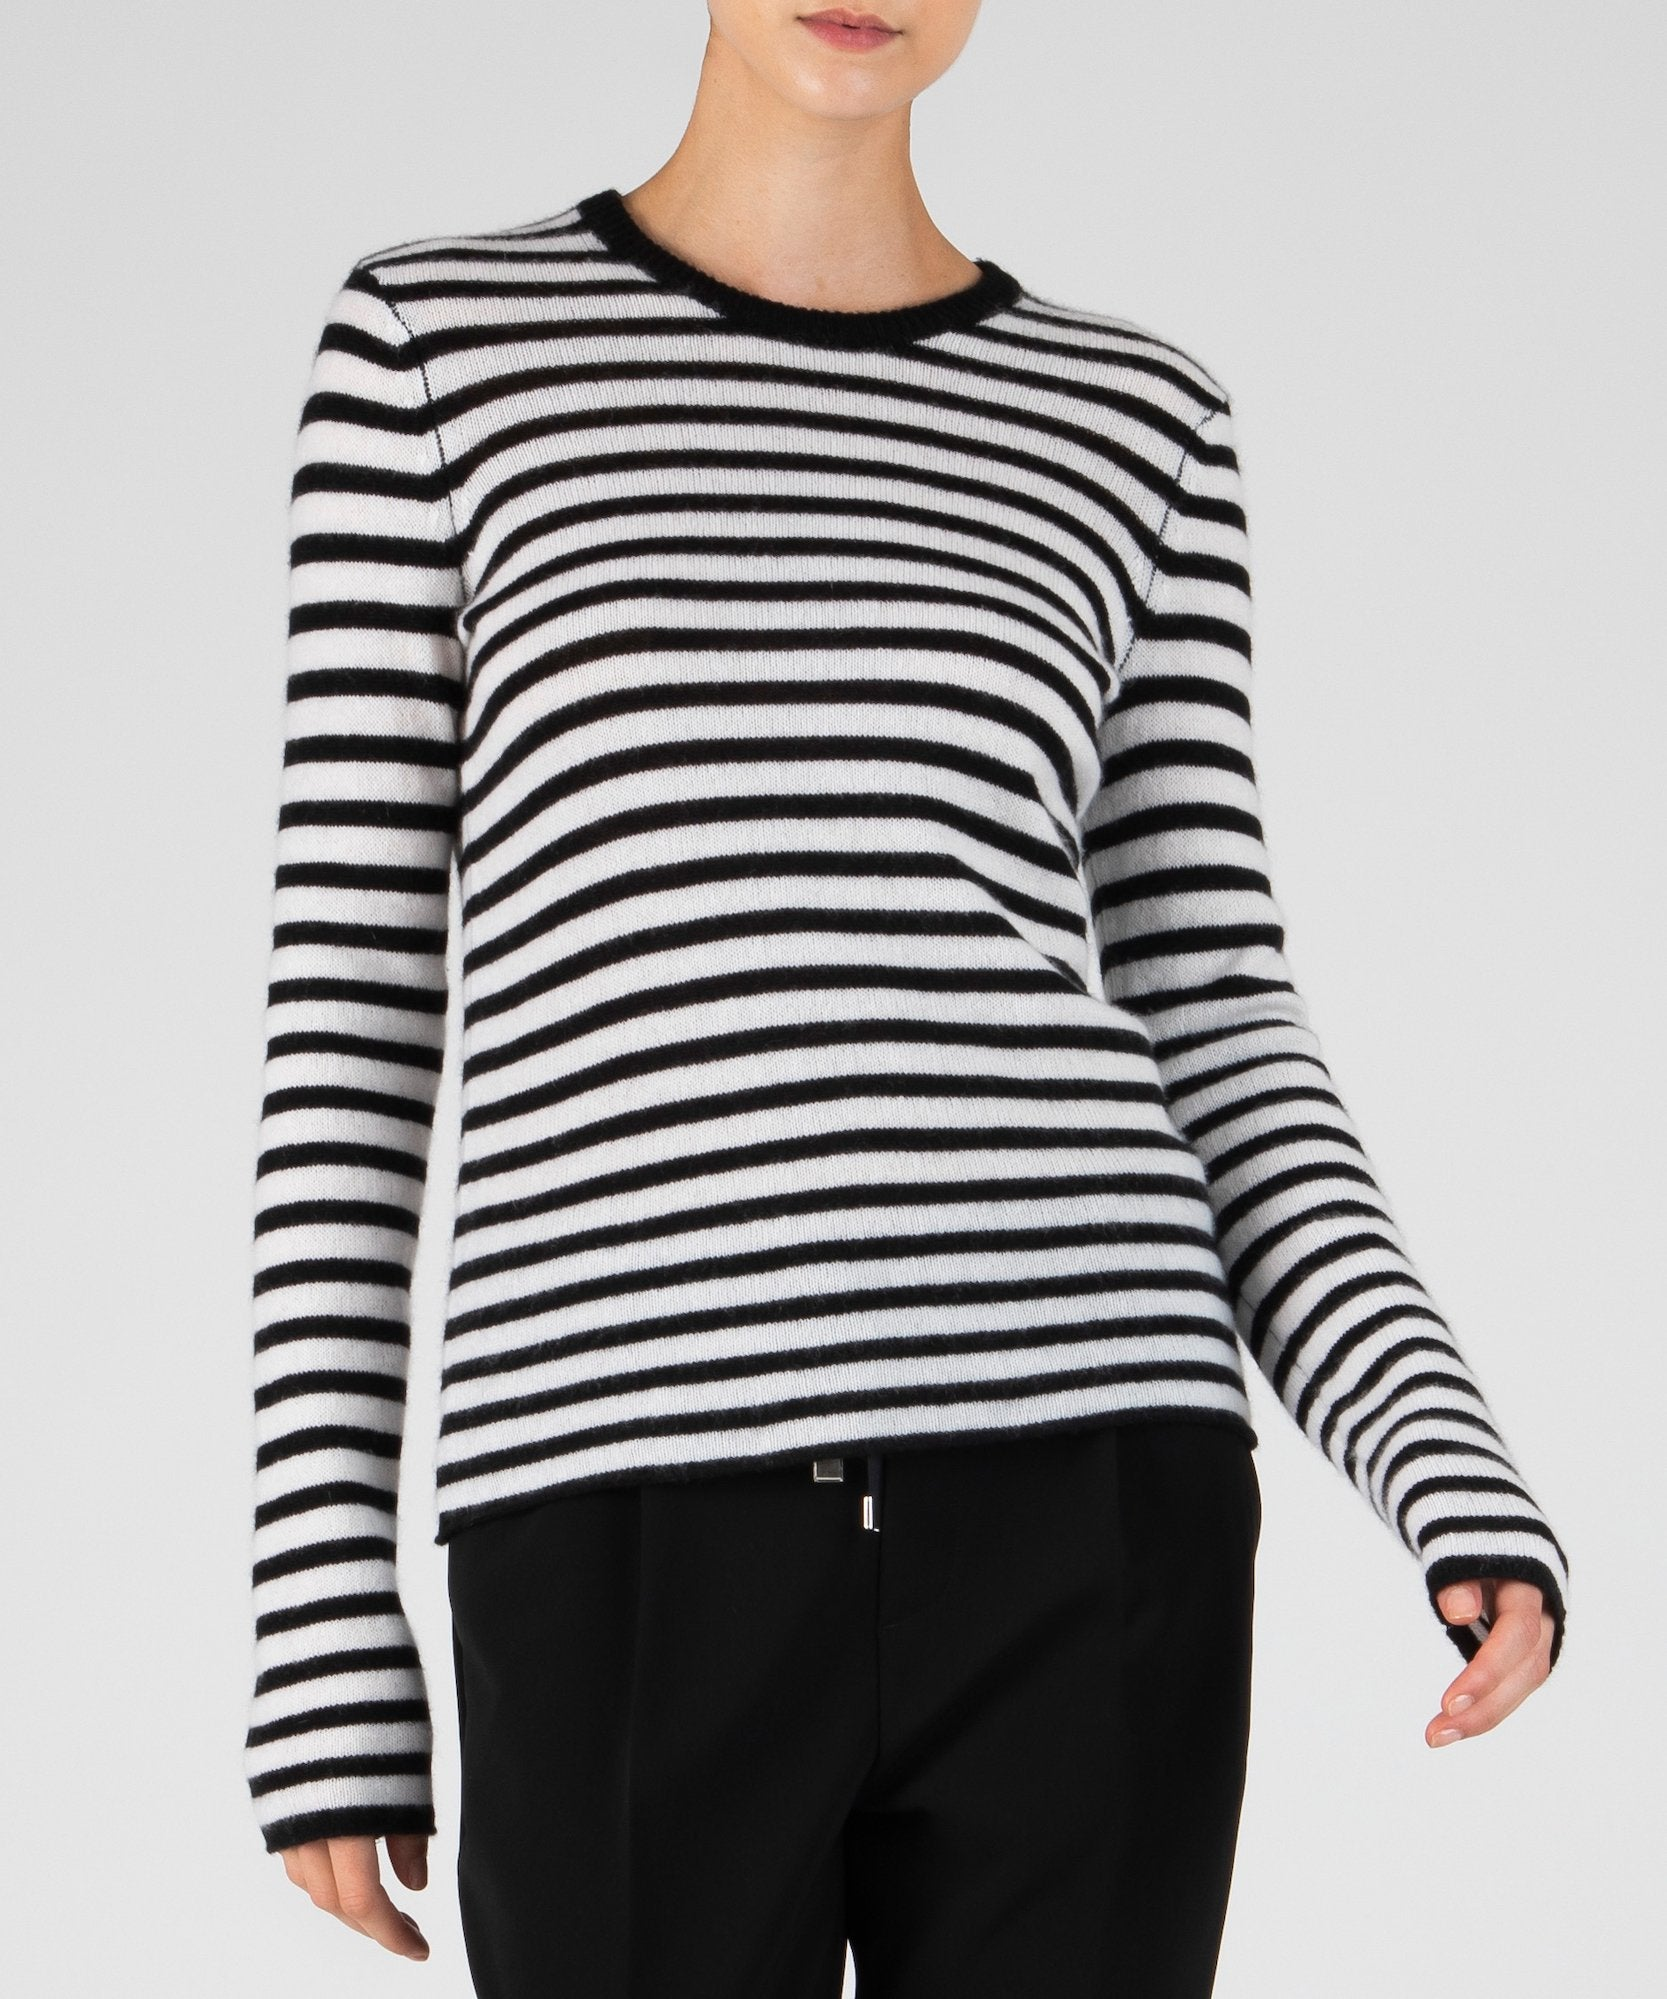 Black and Chalk Striped Cashmere Long Sleeve Crew Neck Sweater - Women's Luxe Sweater by ATM Anthony Thomas Melillo